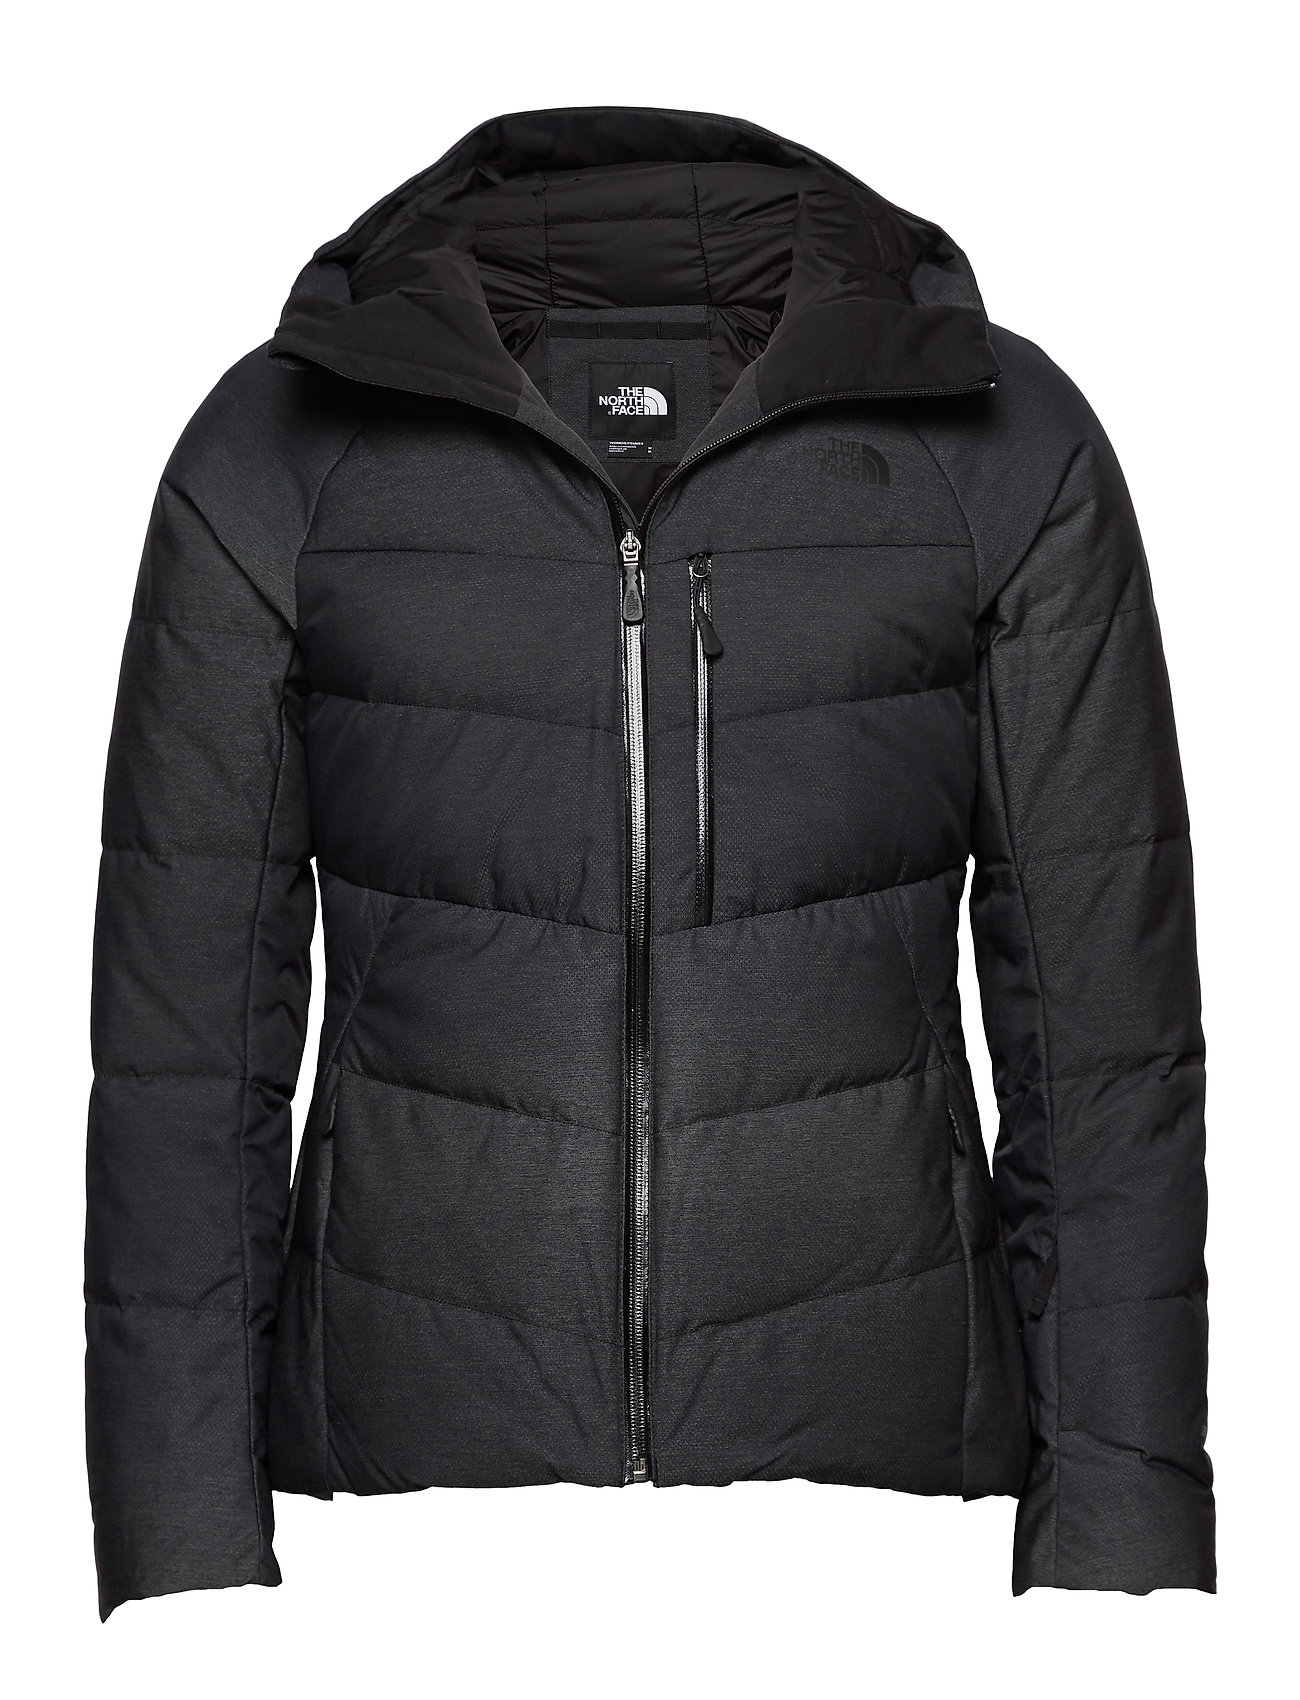 The North Face W BLITHEDALE D JKT - TNF BLACK